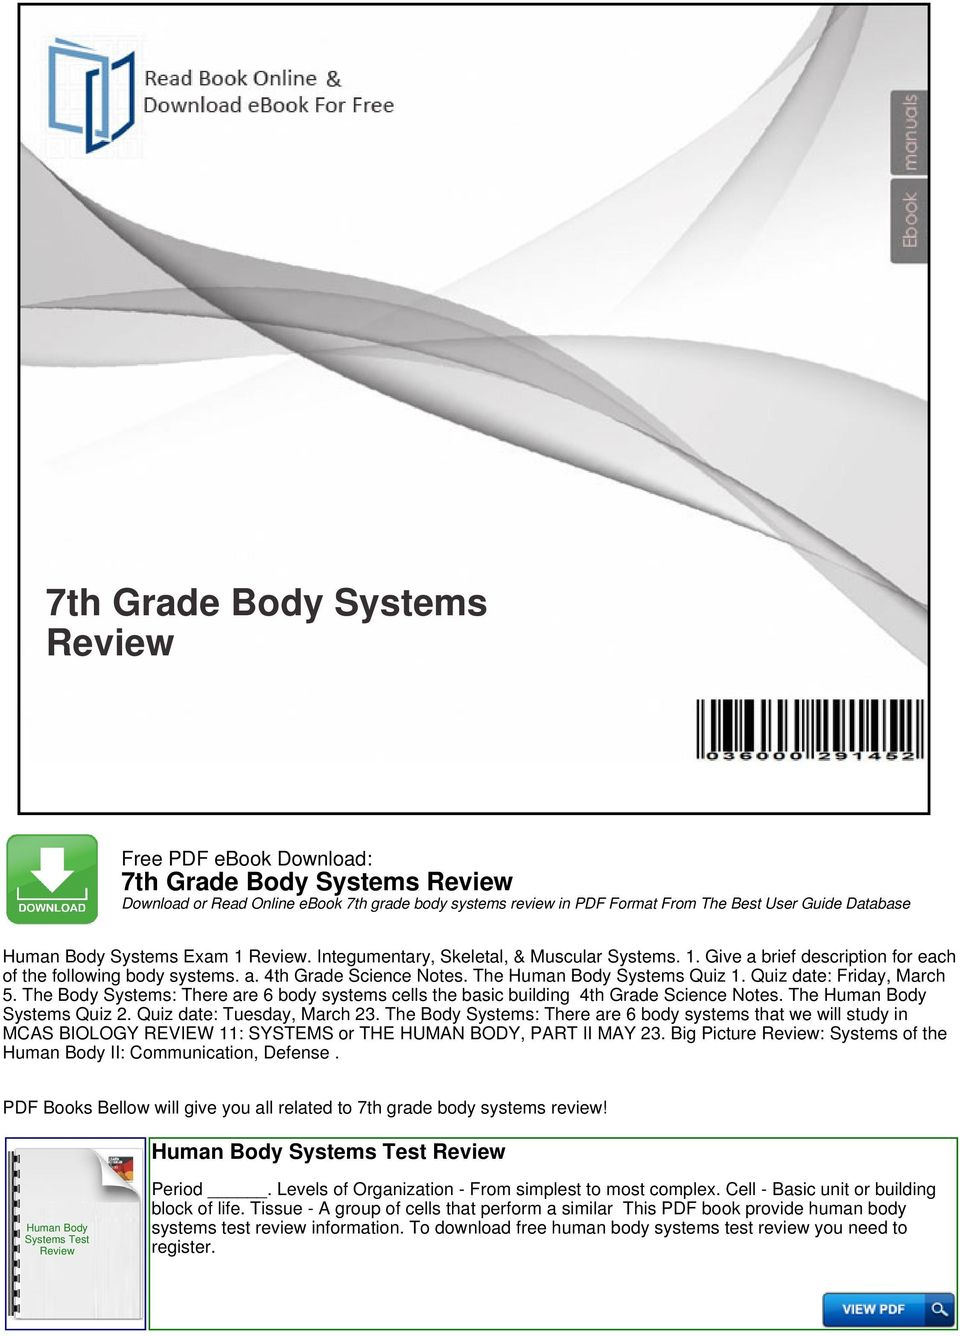 7th Grade Body Systems Review - PDF